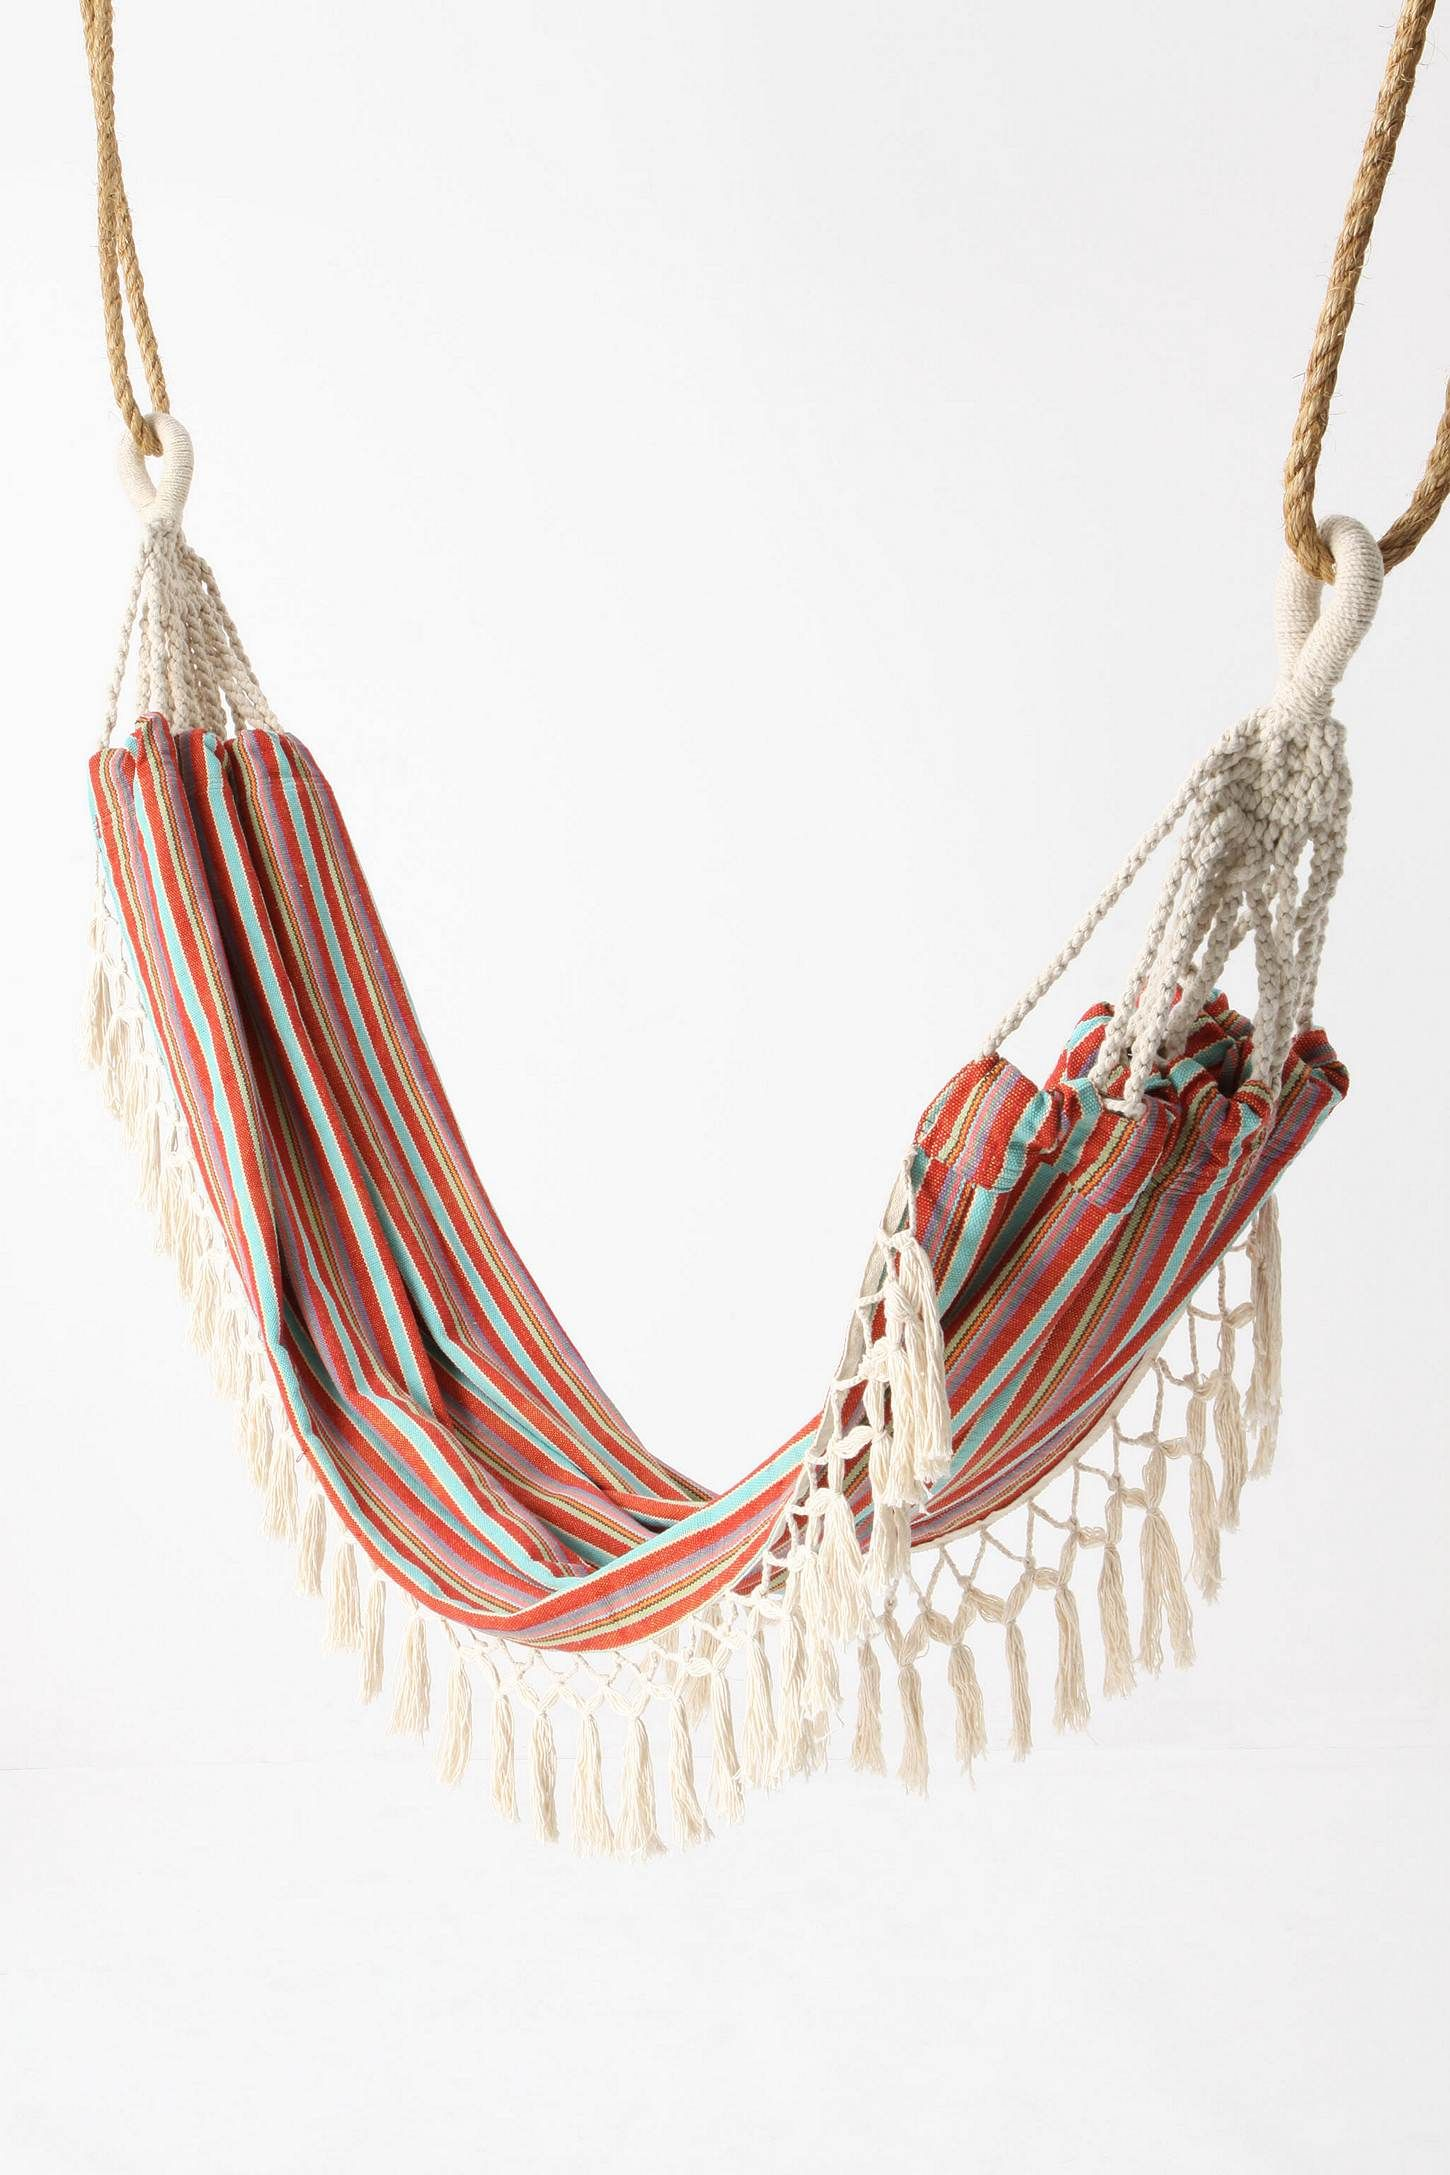 Vibrant afternoon hammock anthropologie garden delights